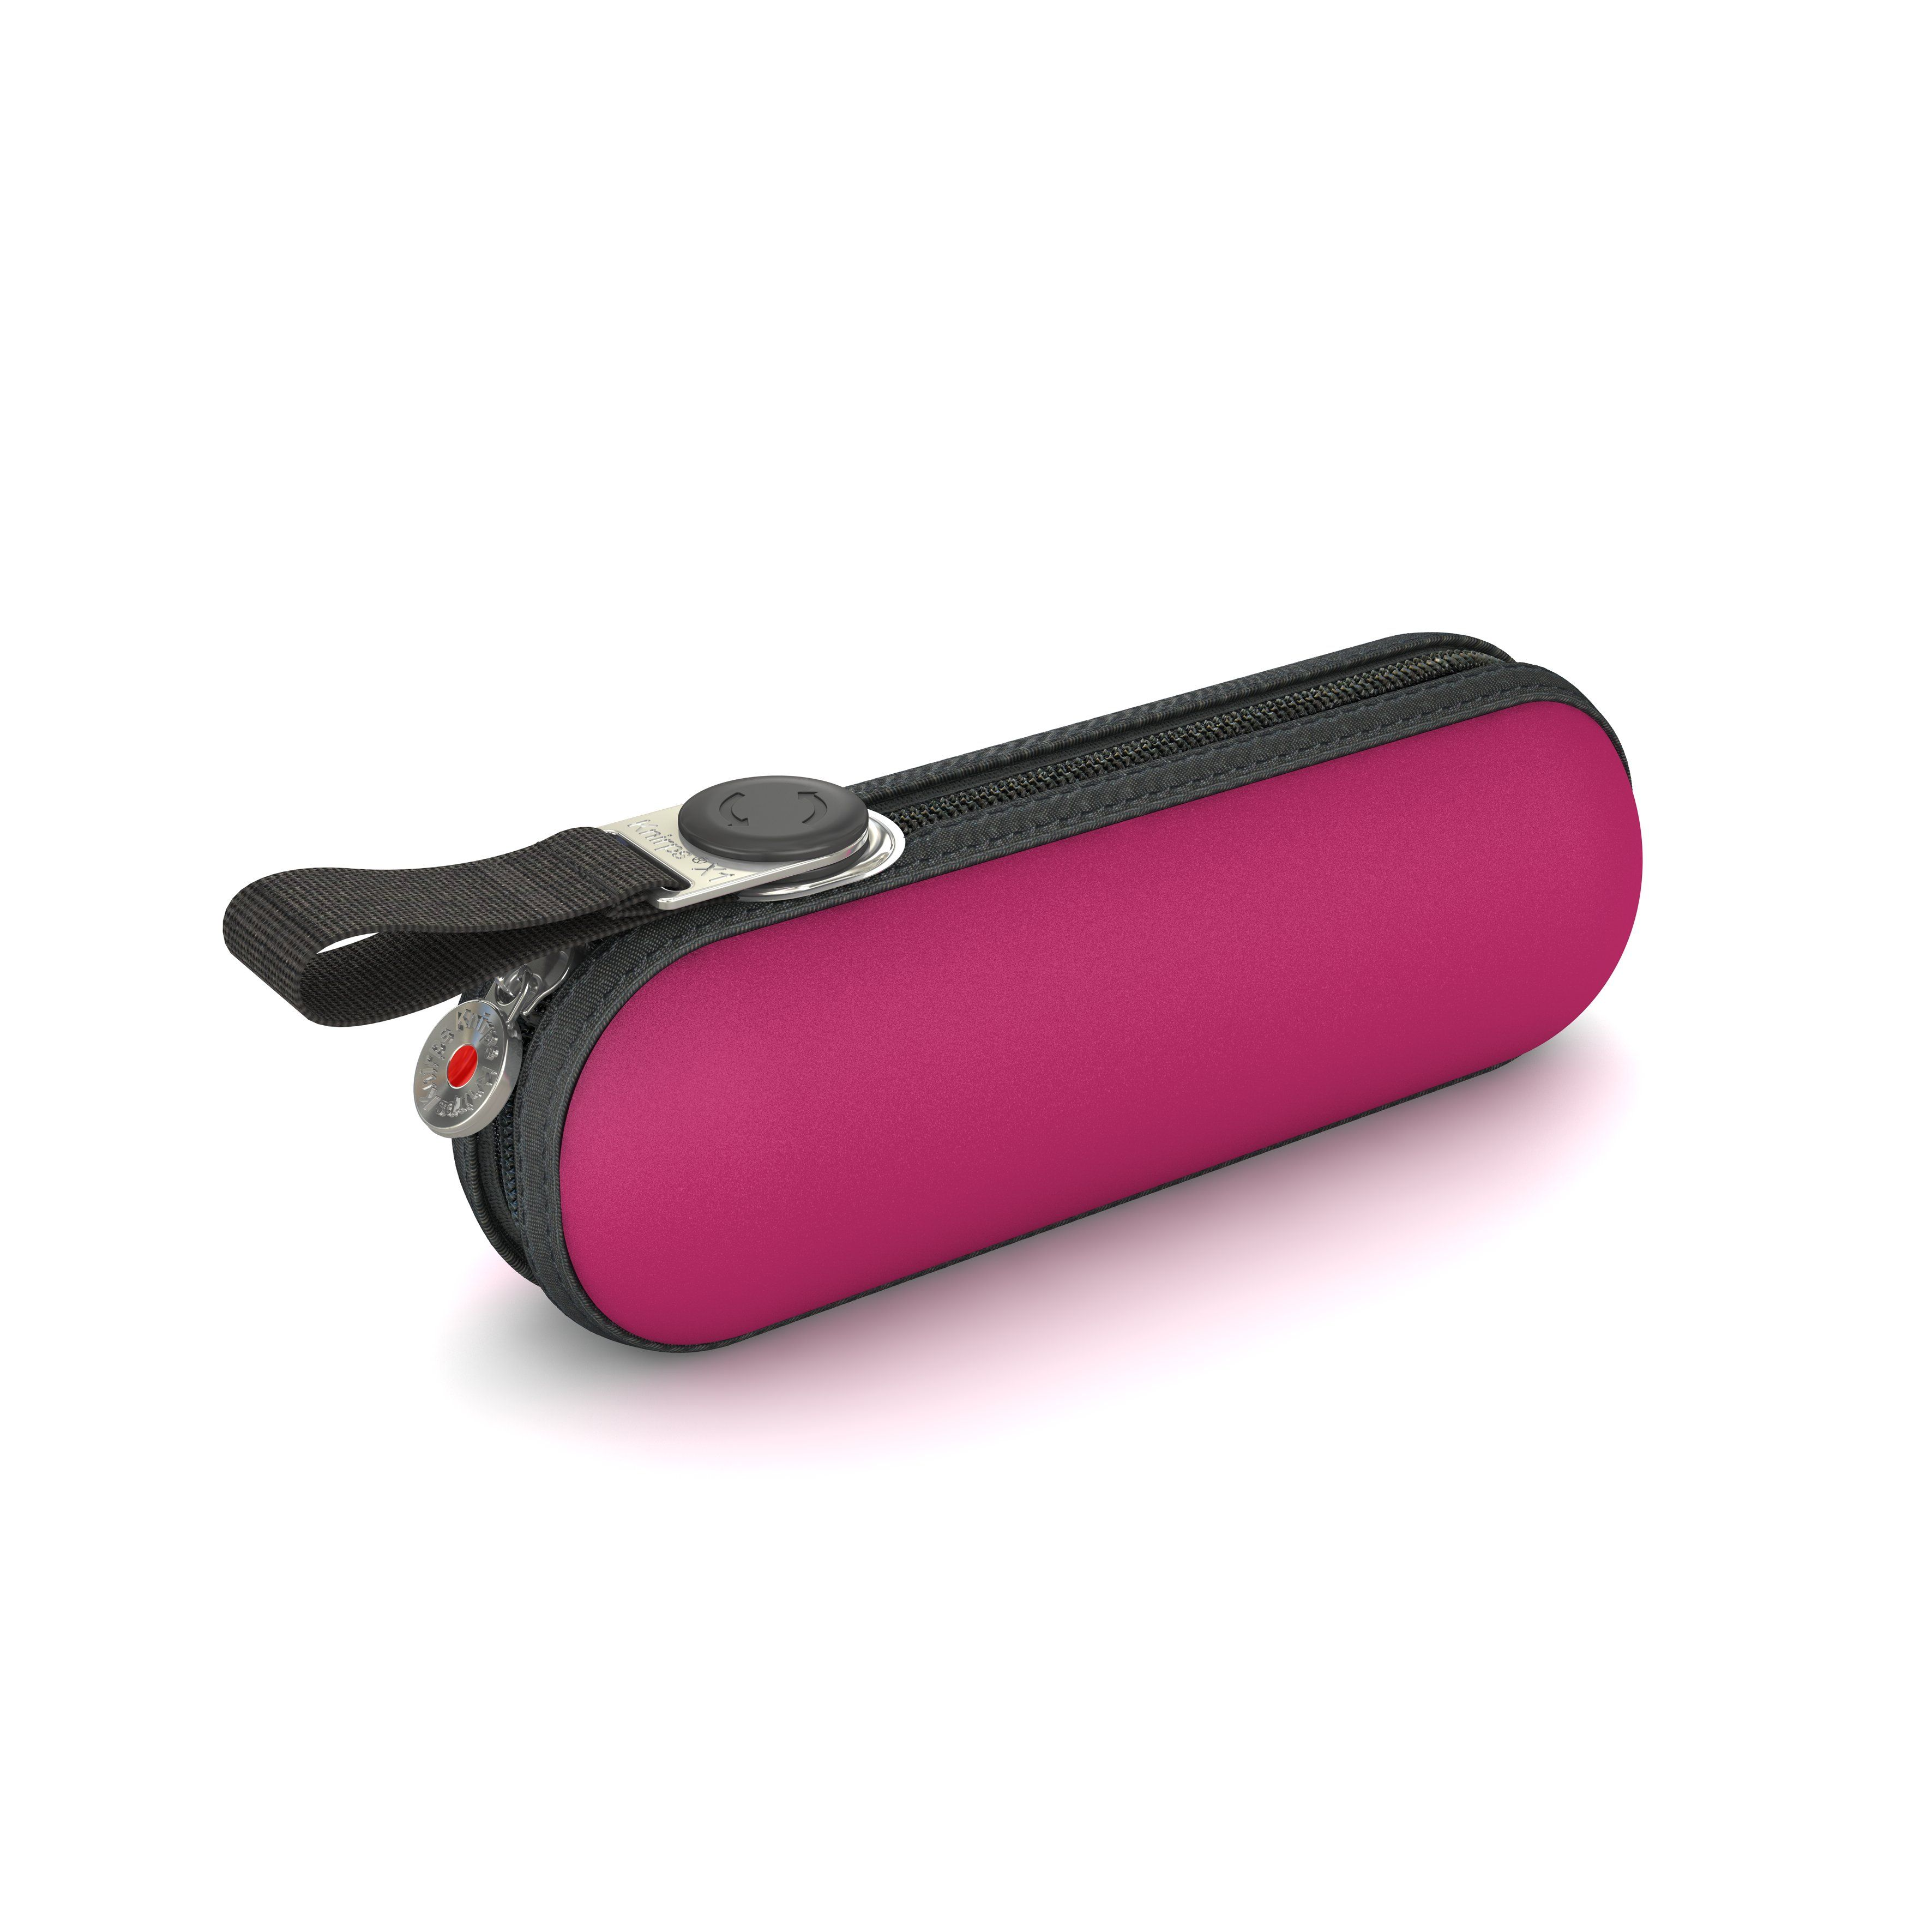 Knirps Umbrella Knirps X1 pink UV Protection 52/8 - photo 2